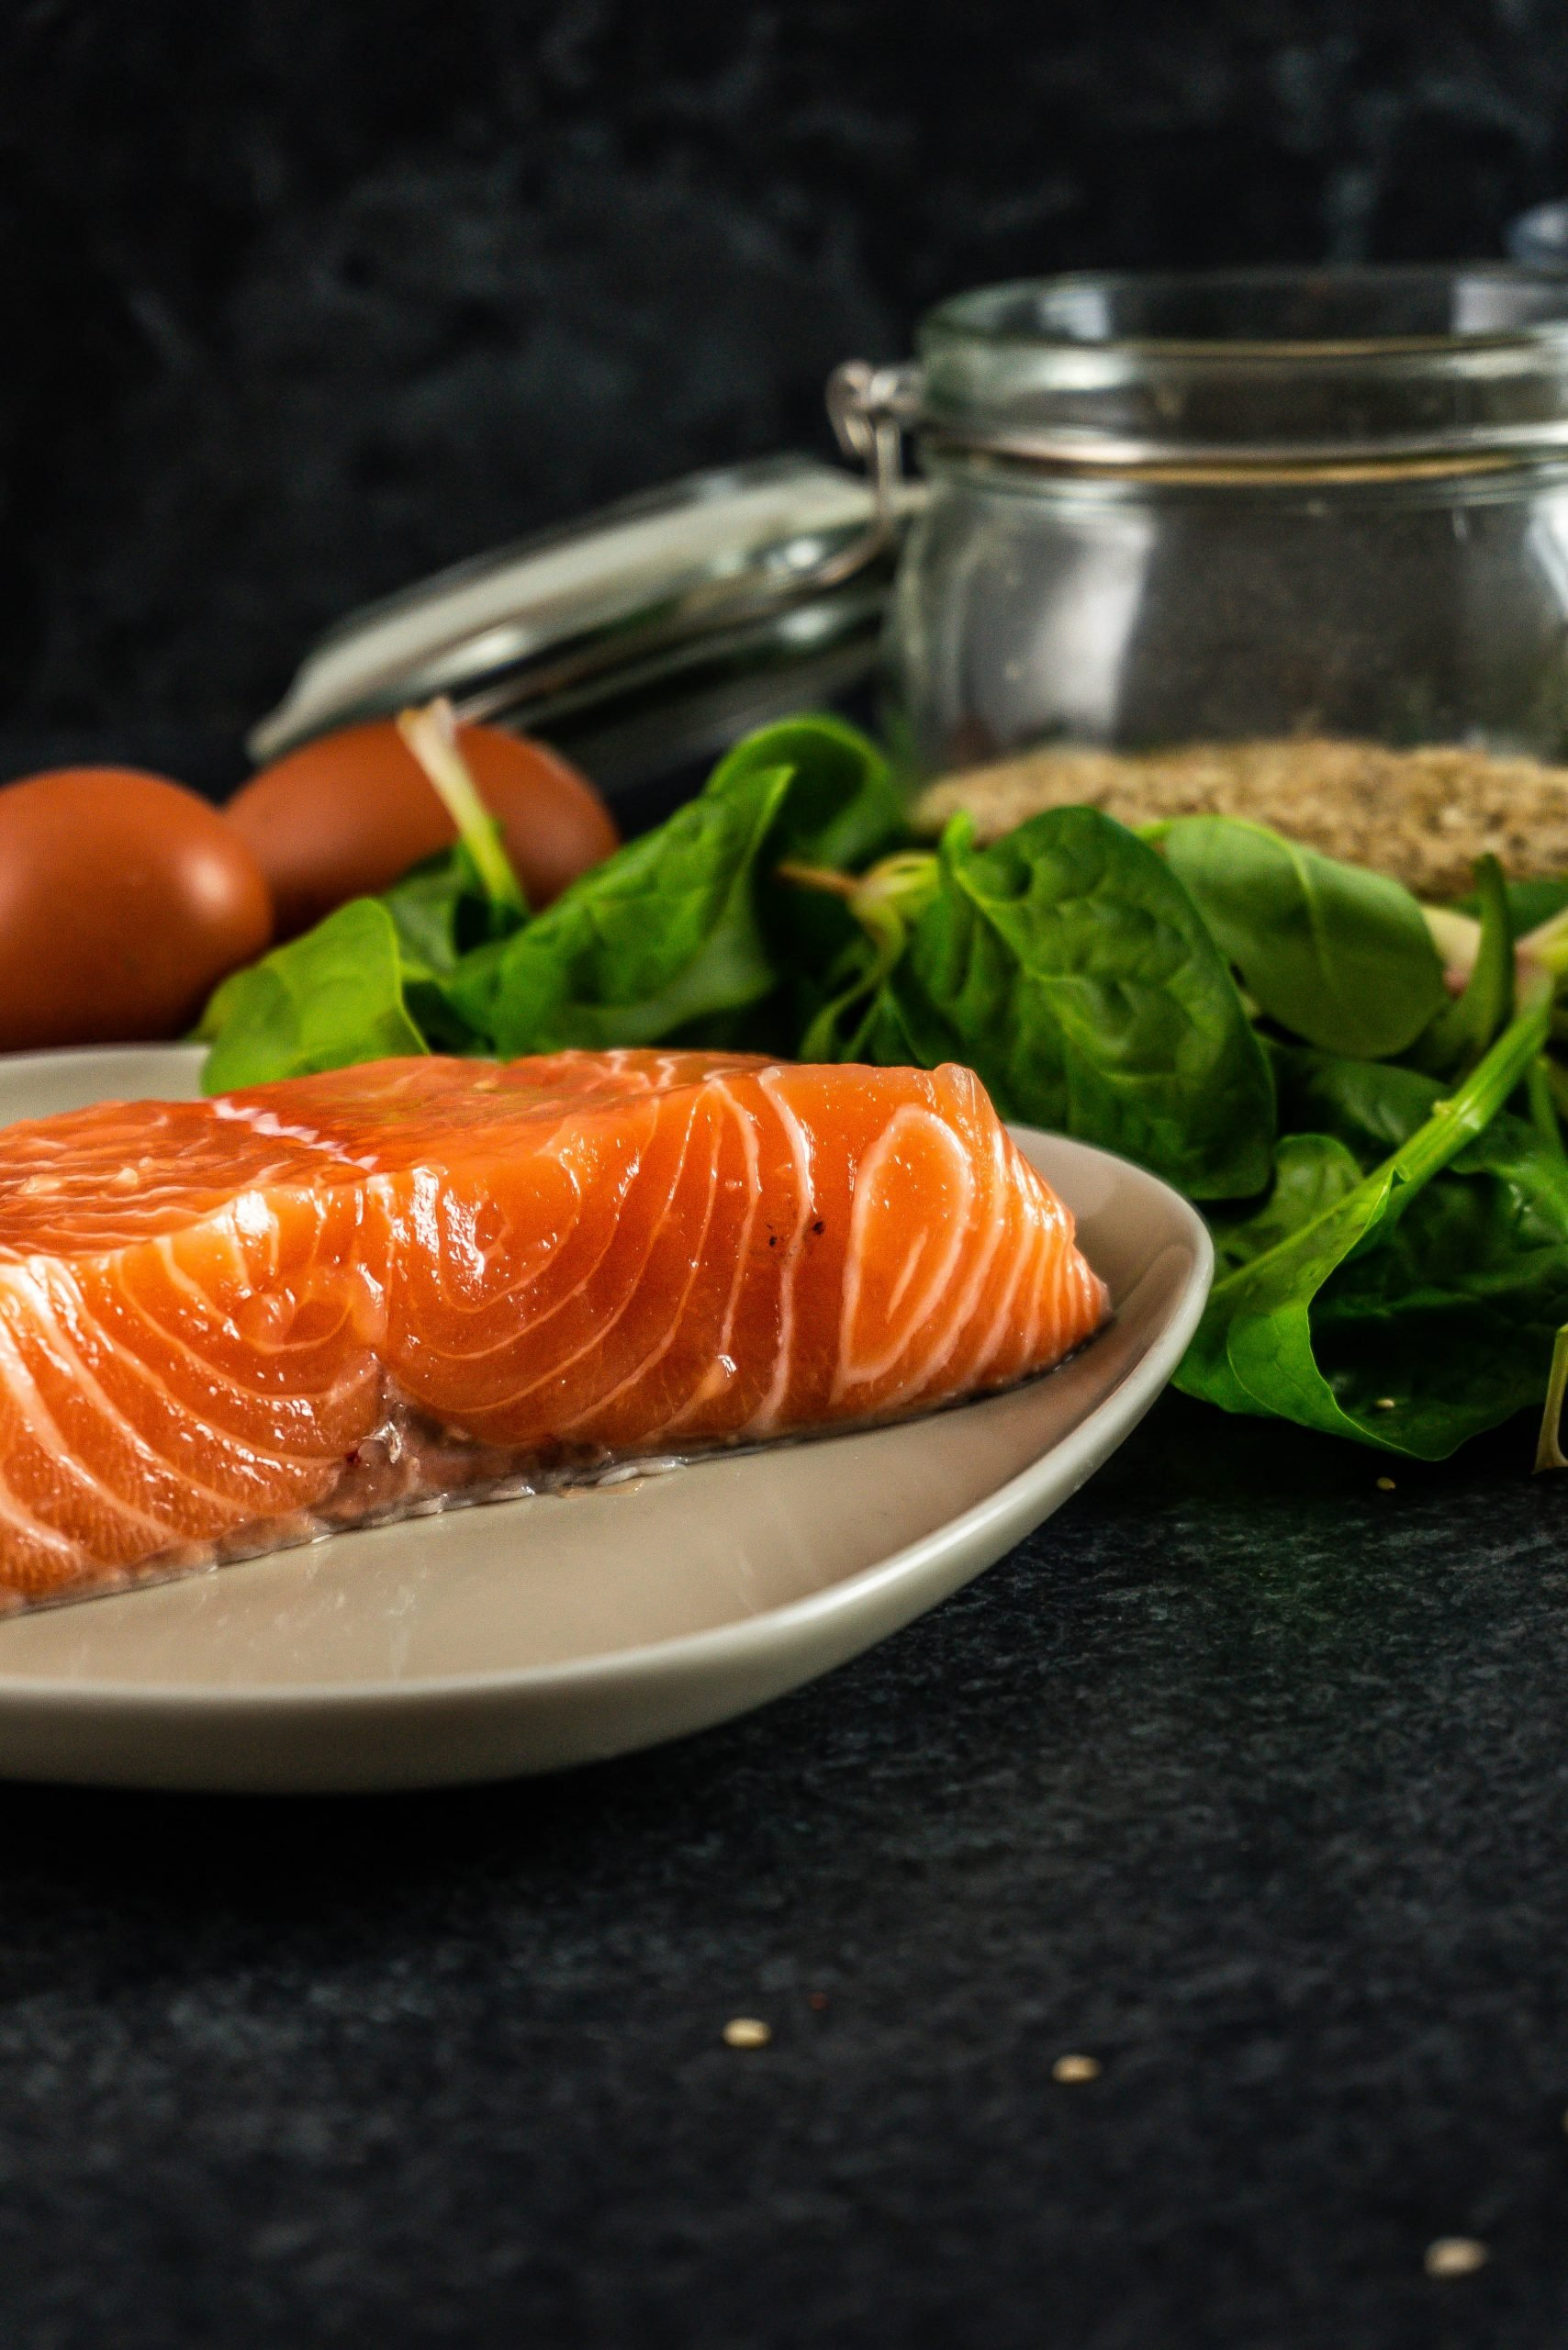 Wild-caught salmon on a plate